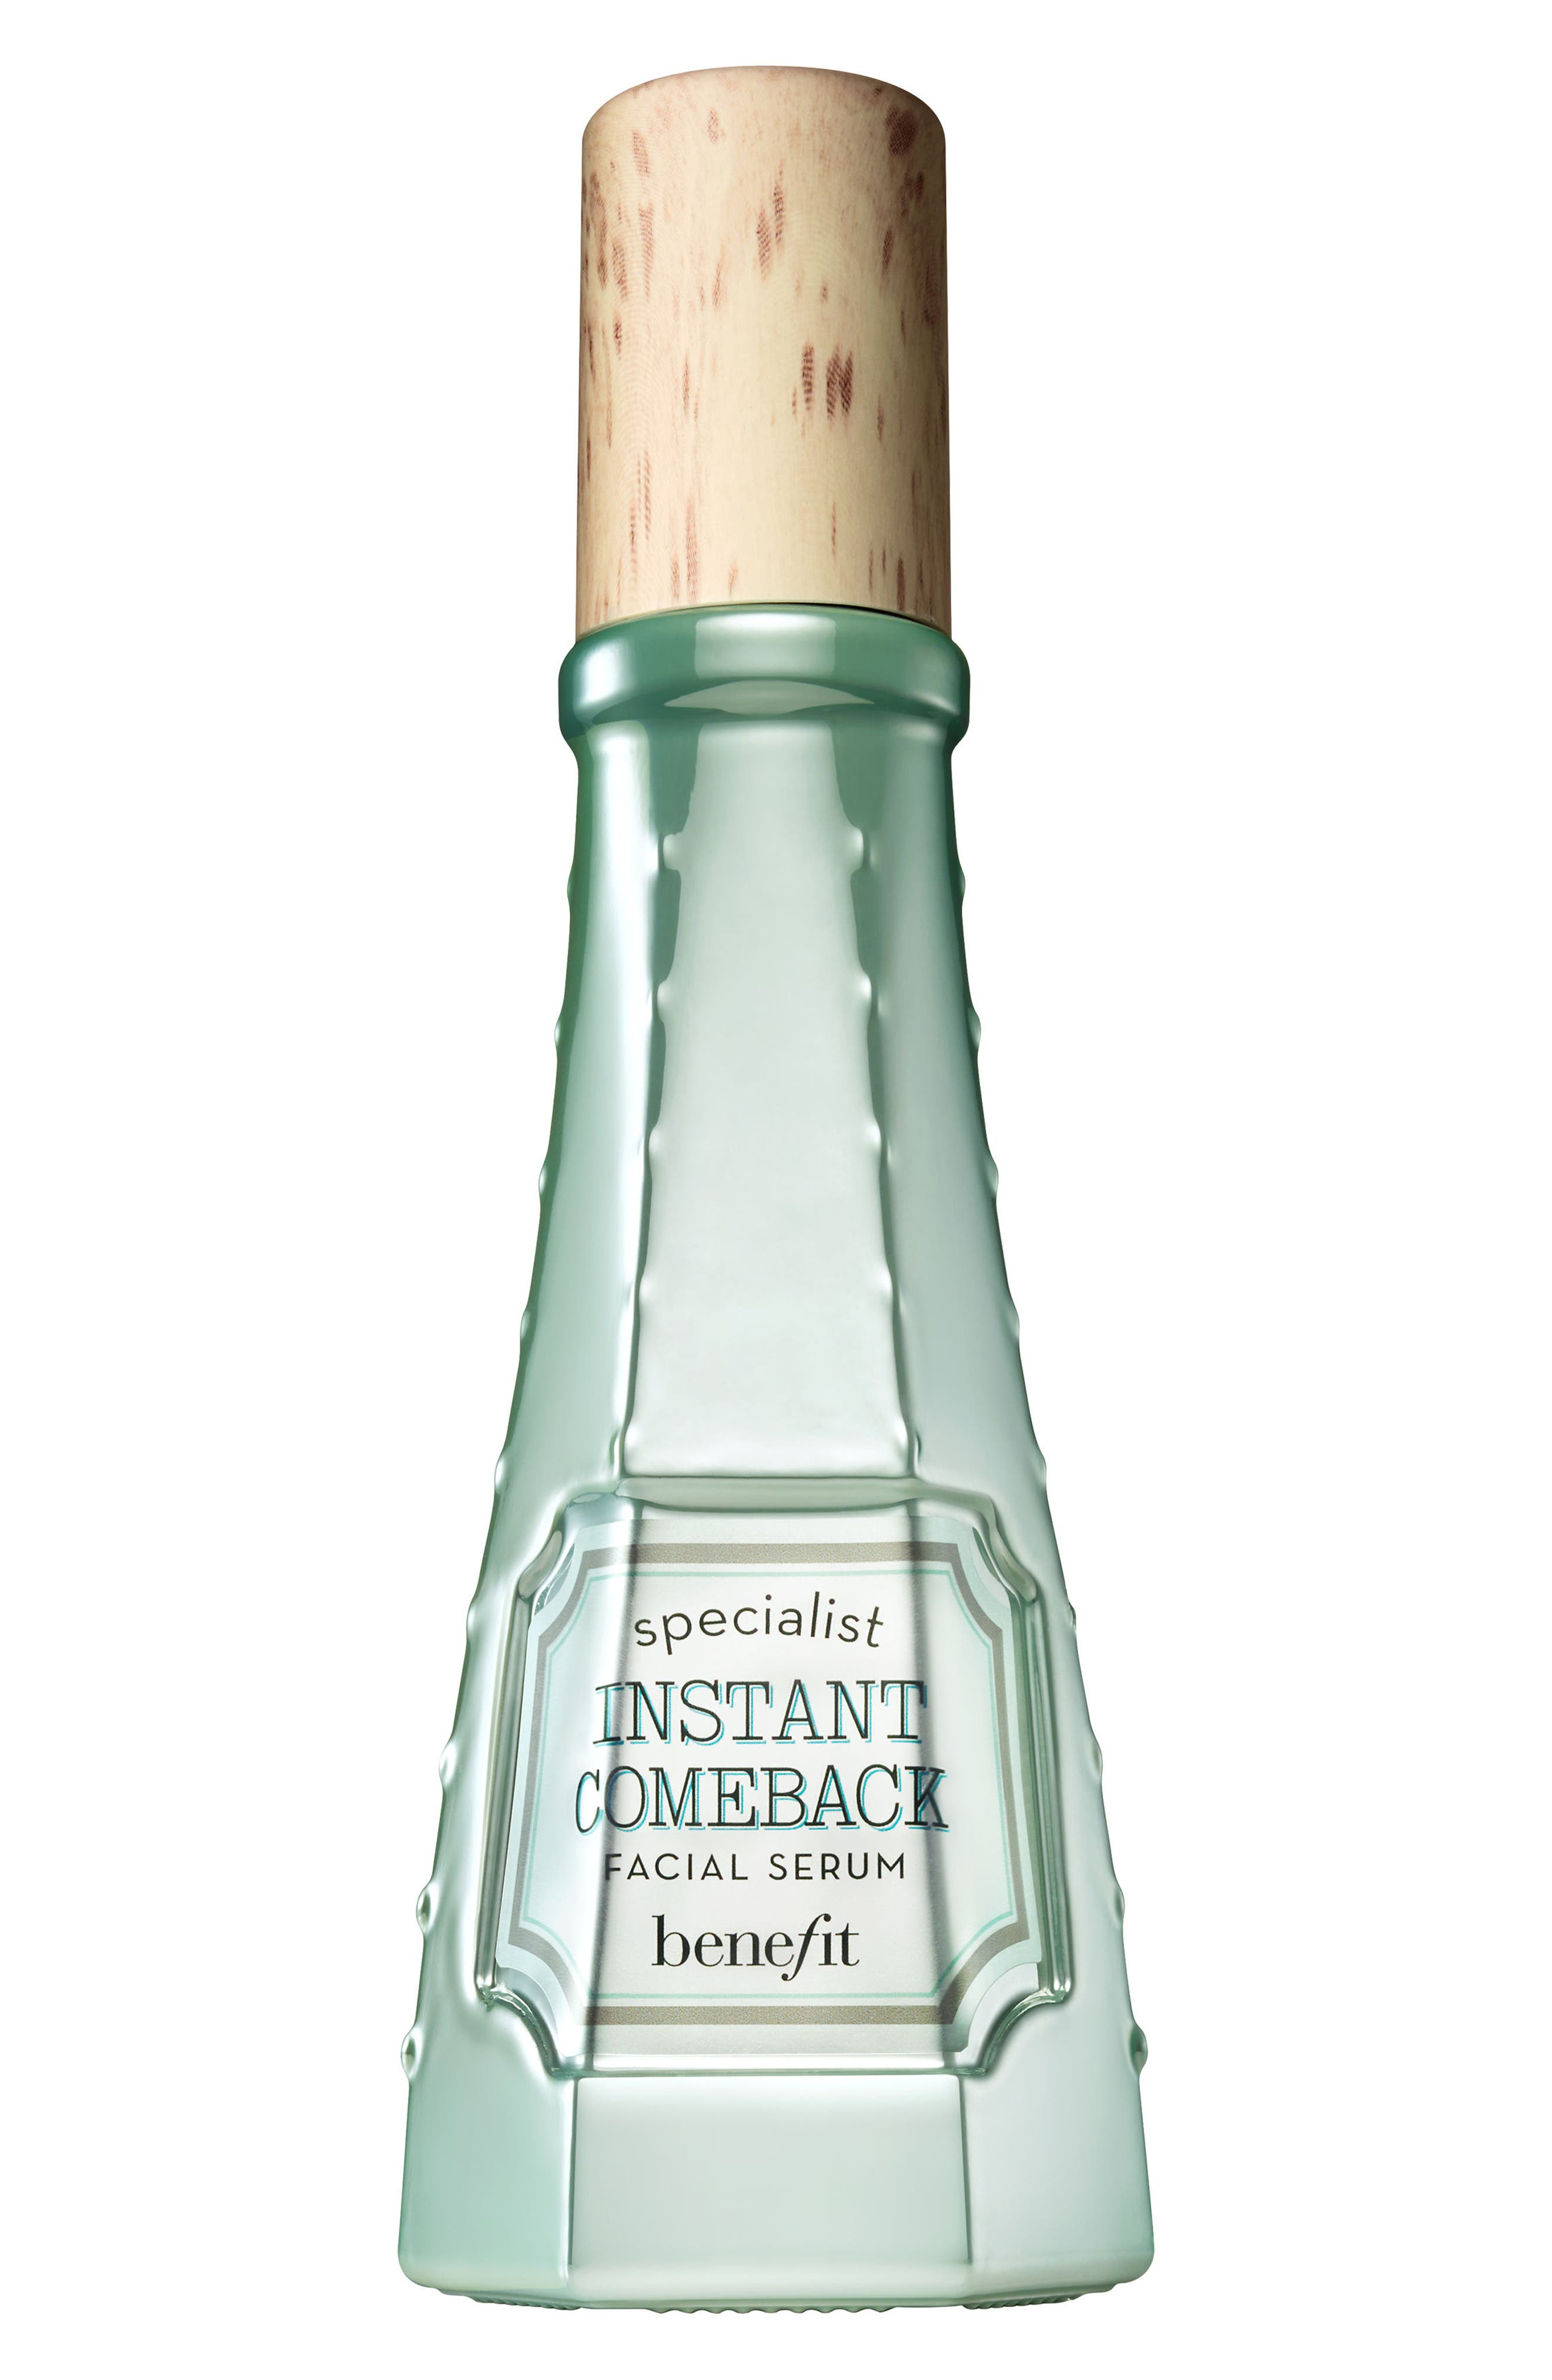 Benefit Instant Comeback Age-Defying Facial Serum,                             Main thumbnail 1, color,                             No Color